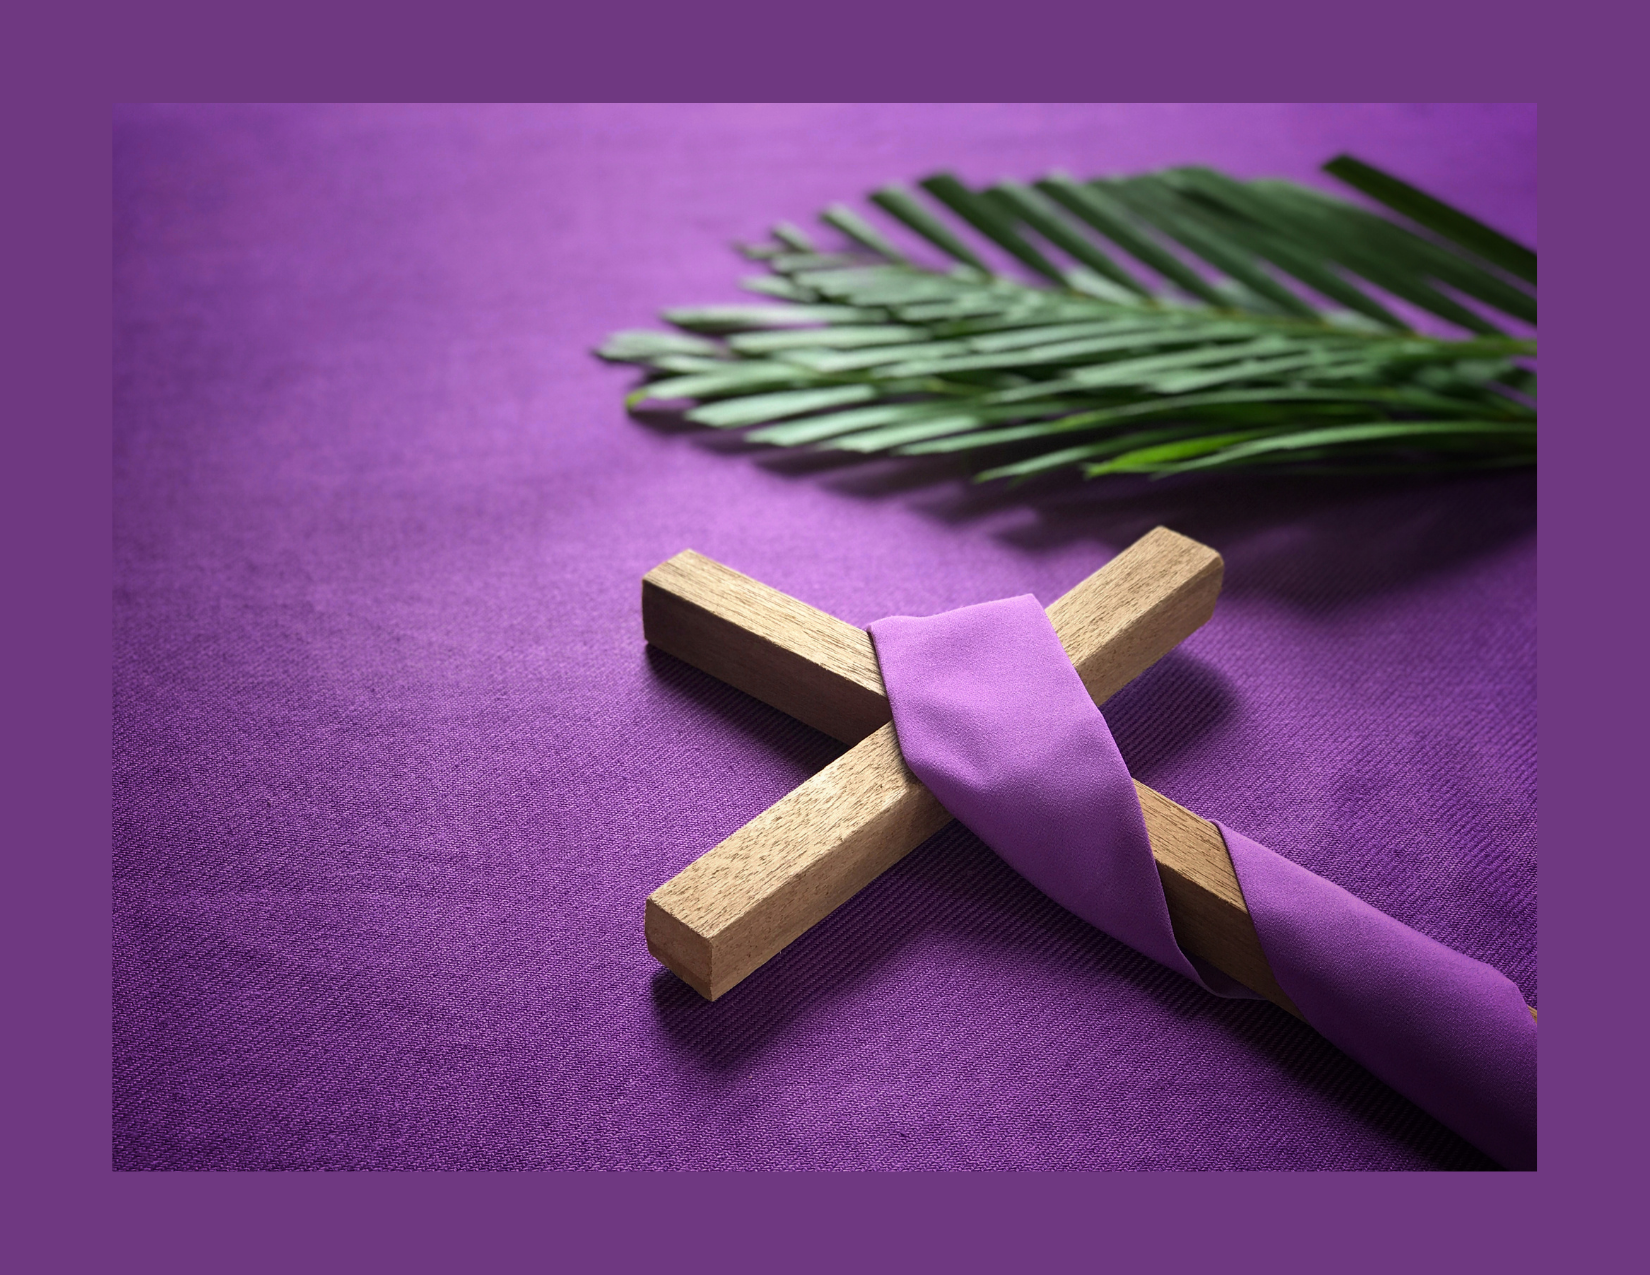 visit this page throughout lent